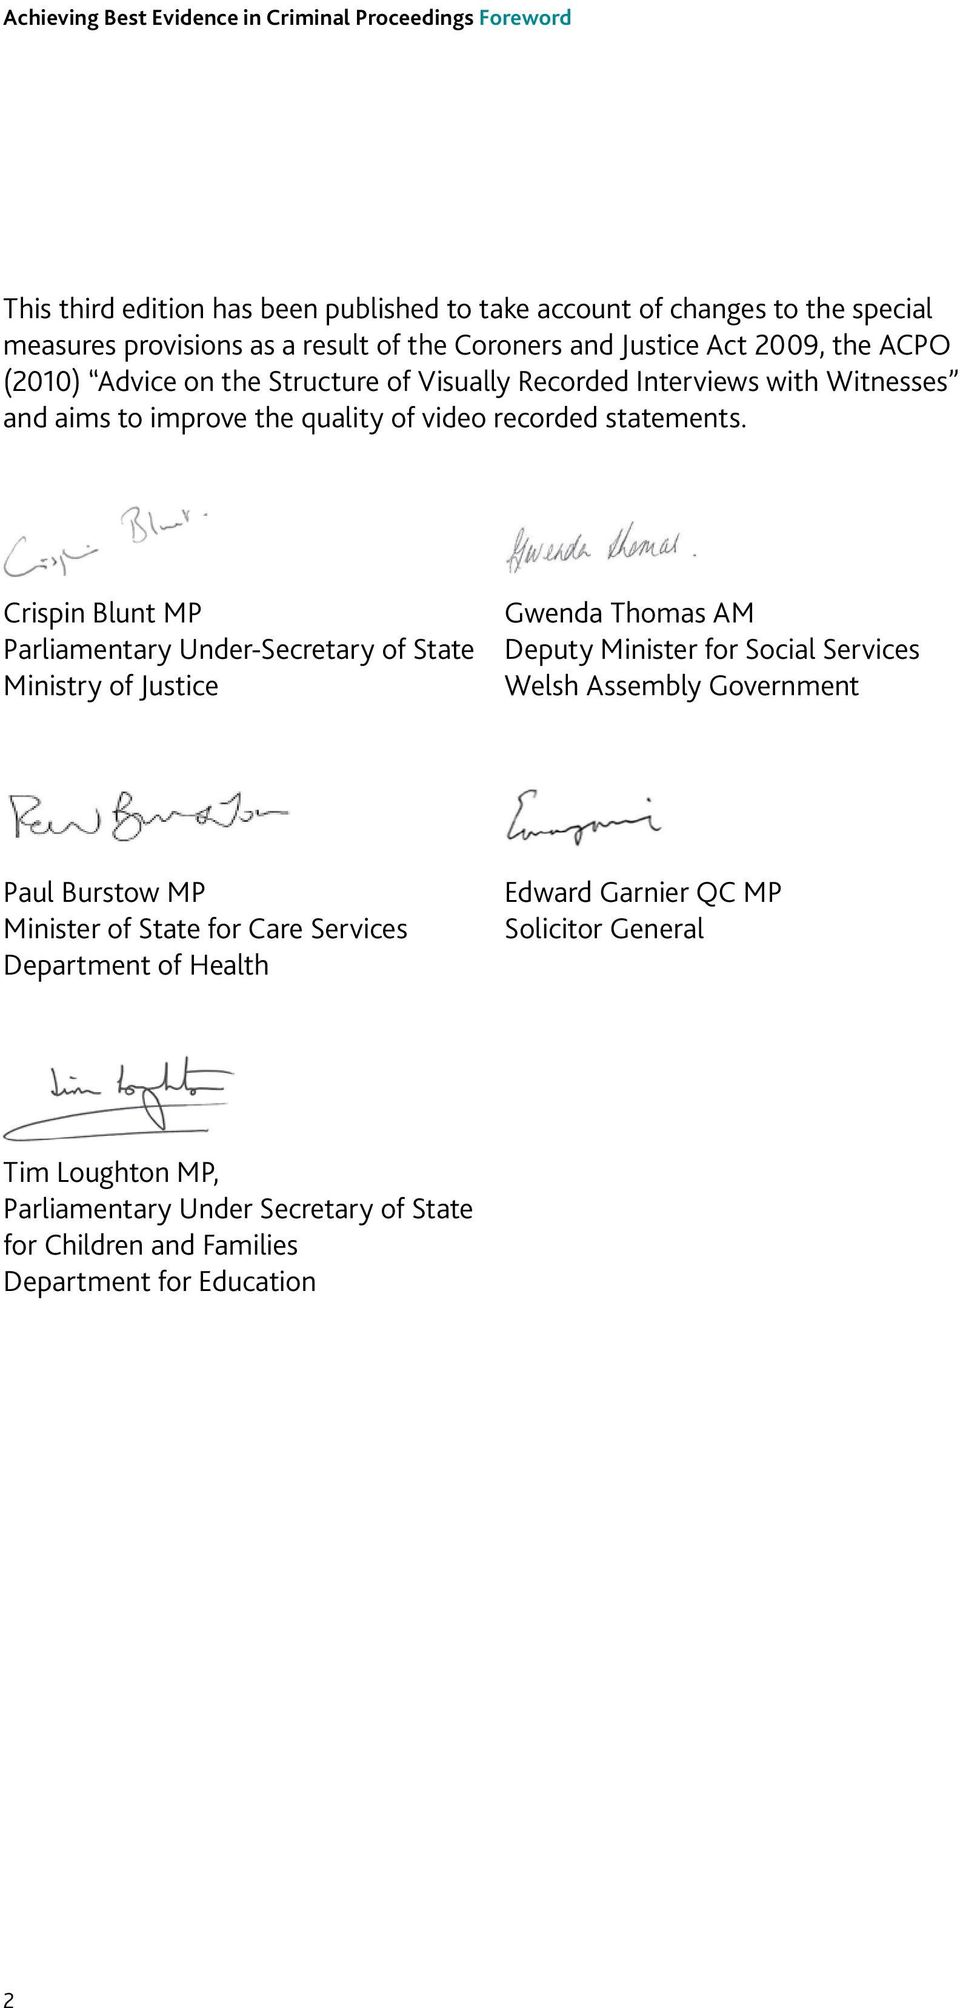 Crispin Blunt MP Parliamentary Under-Secretary of State Ministry of Justice Gwenda Thomas AM Deputy Minister for Social Services Welsh Assembly Government Paul Burstow MP Minister of